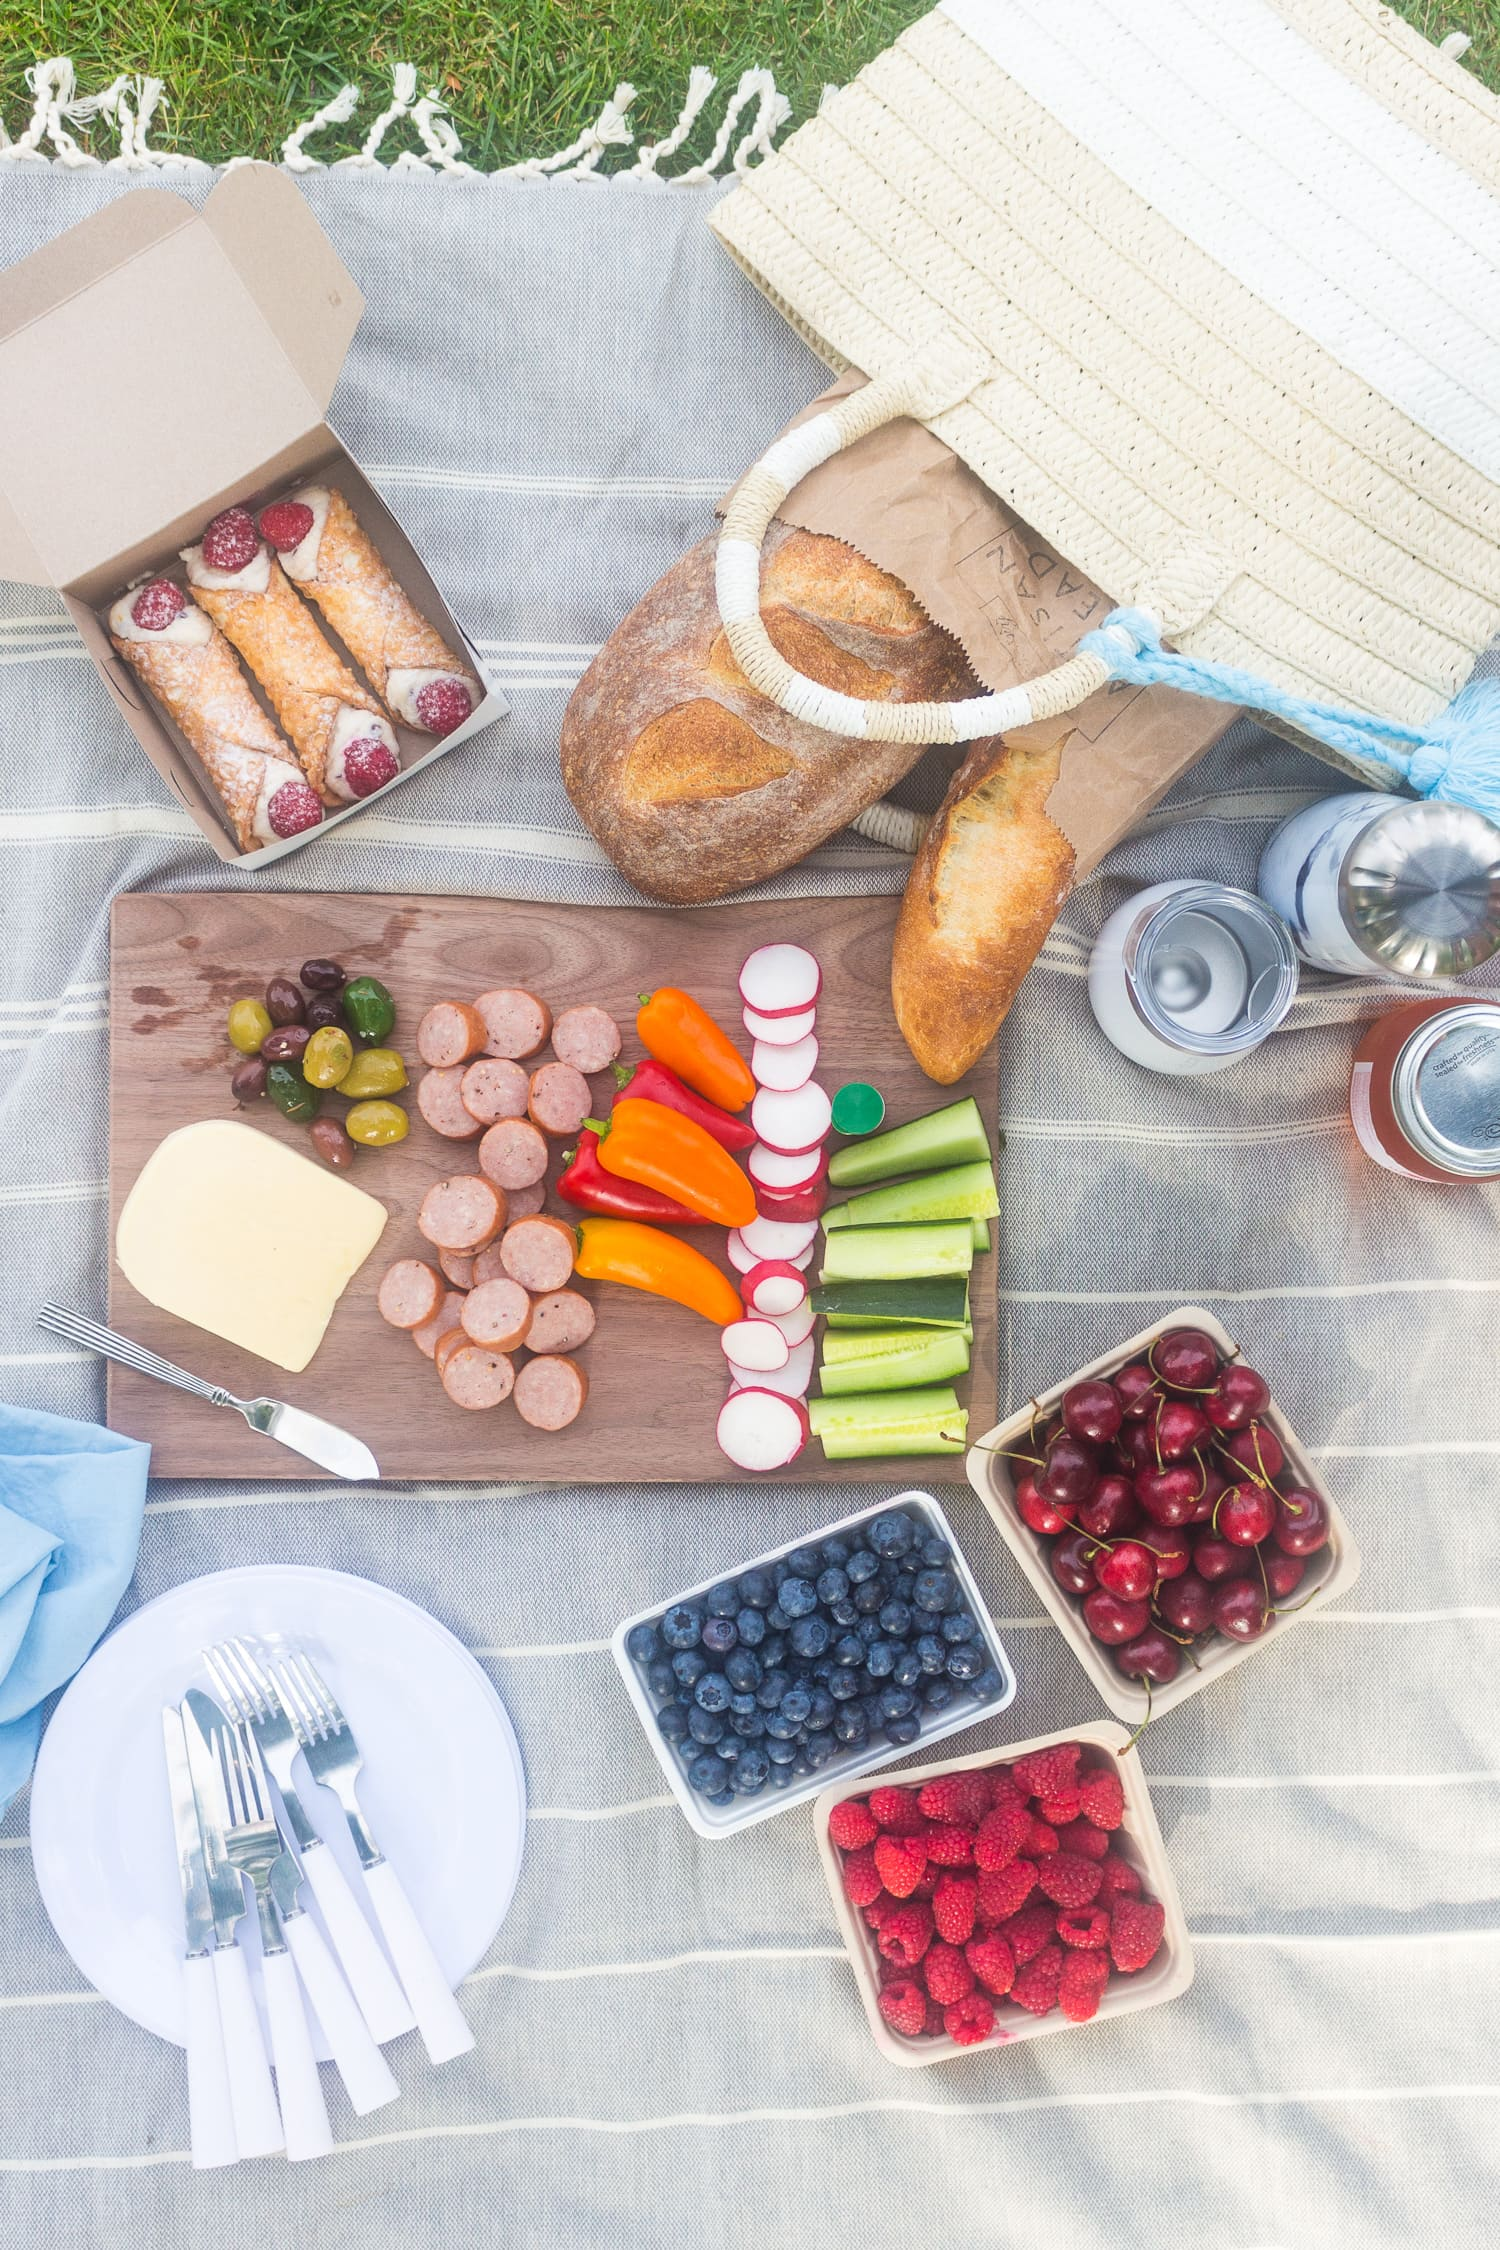 Overhead shot of a picnic set up on a blanket